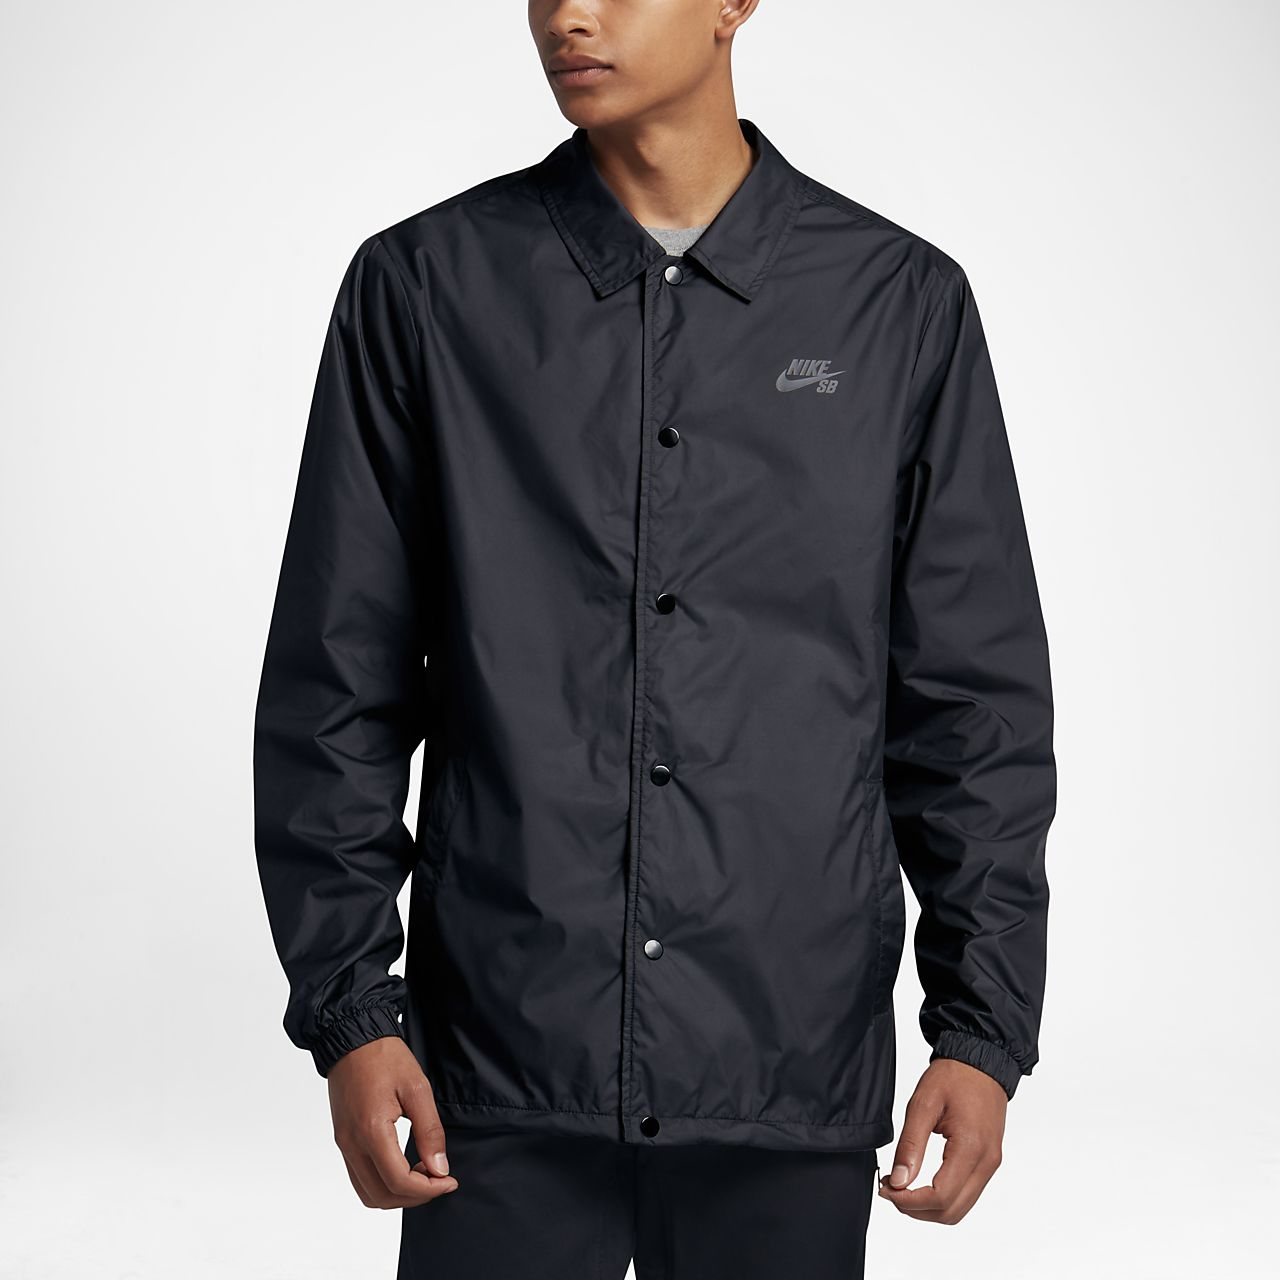 c67ec76958f6 Nike SB Shield Coaches Men s Jacket. Nike.com CA